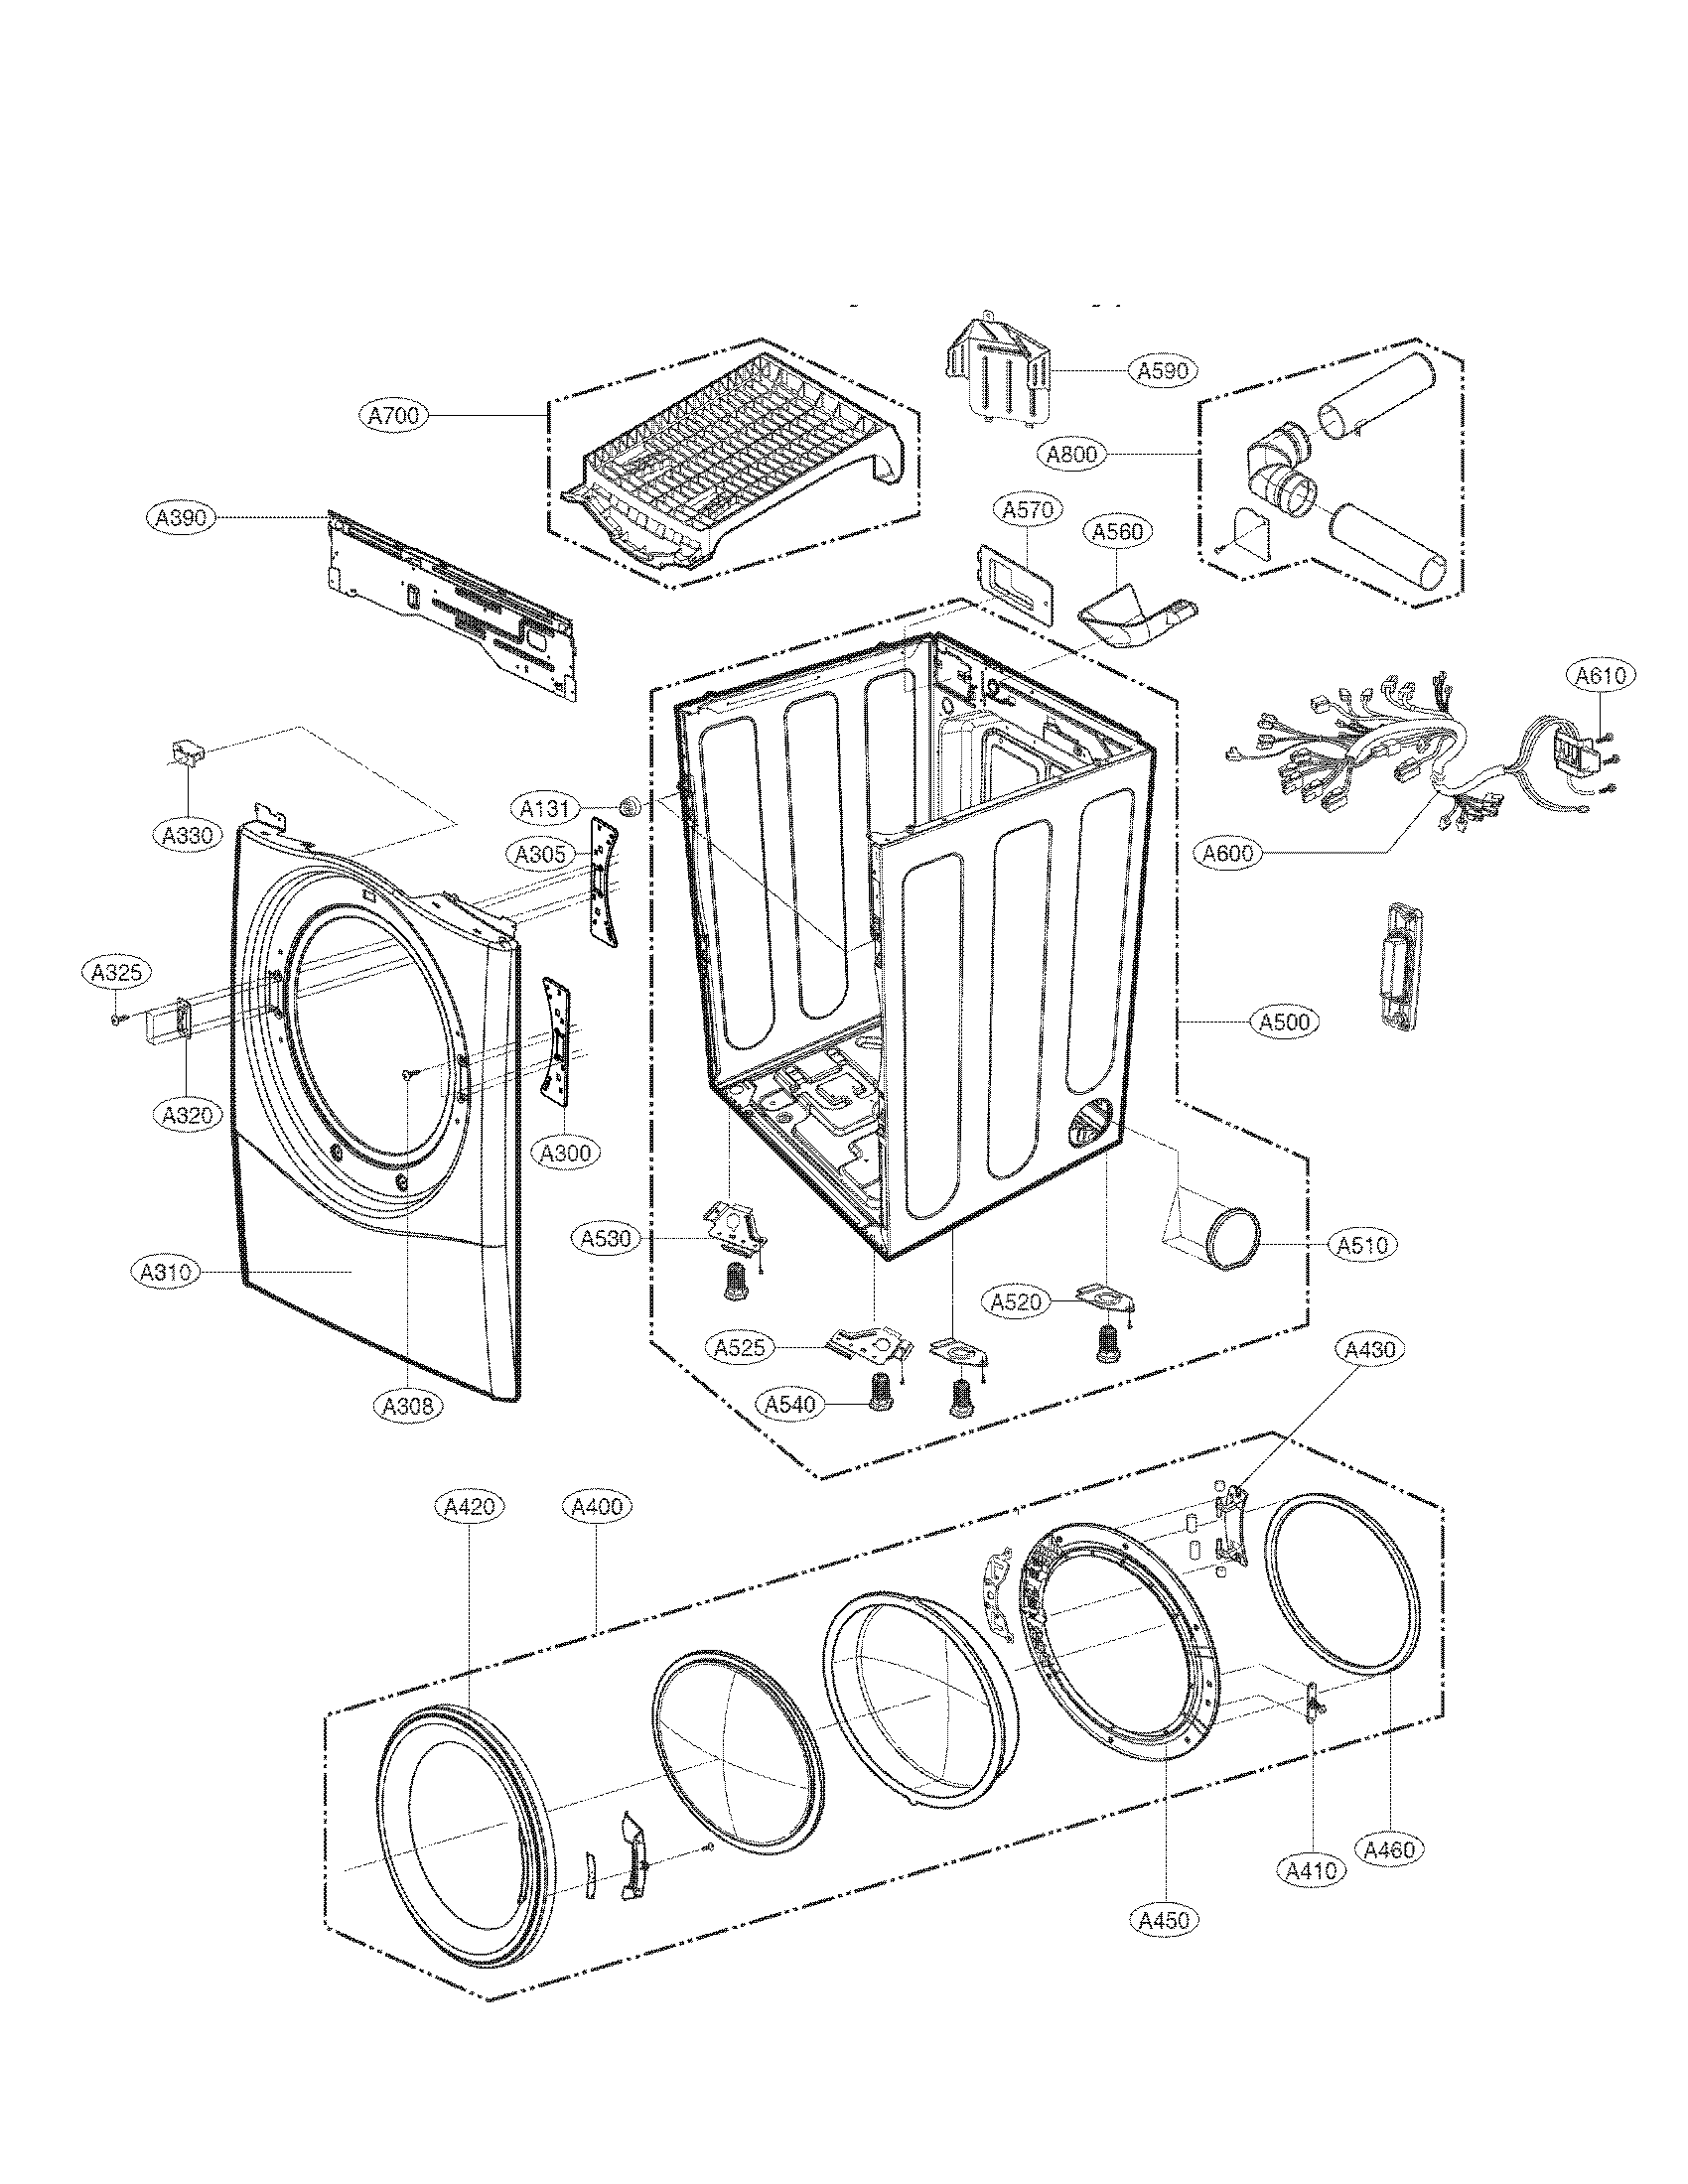 LG DLEX3470V cabinet and door assembly parts diagram